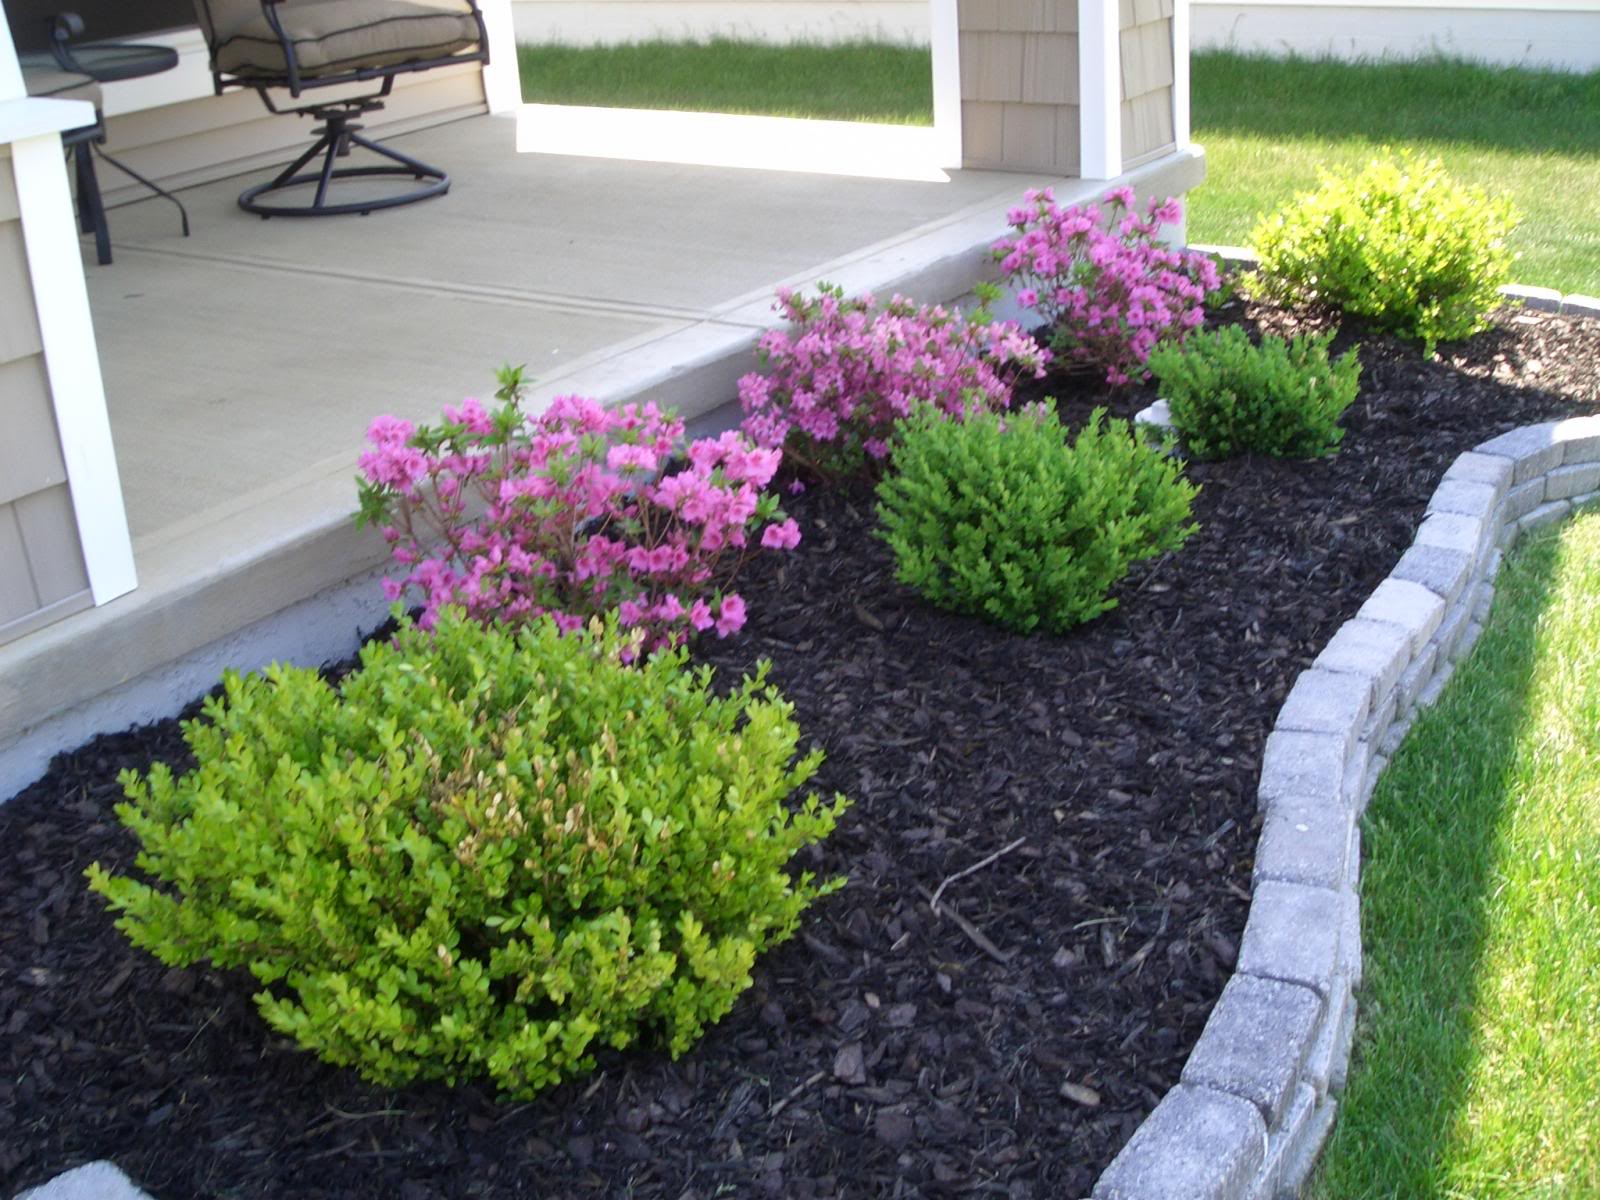 Landscaping landscape plants ideas for Garden plans and plants